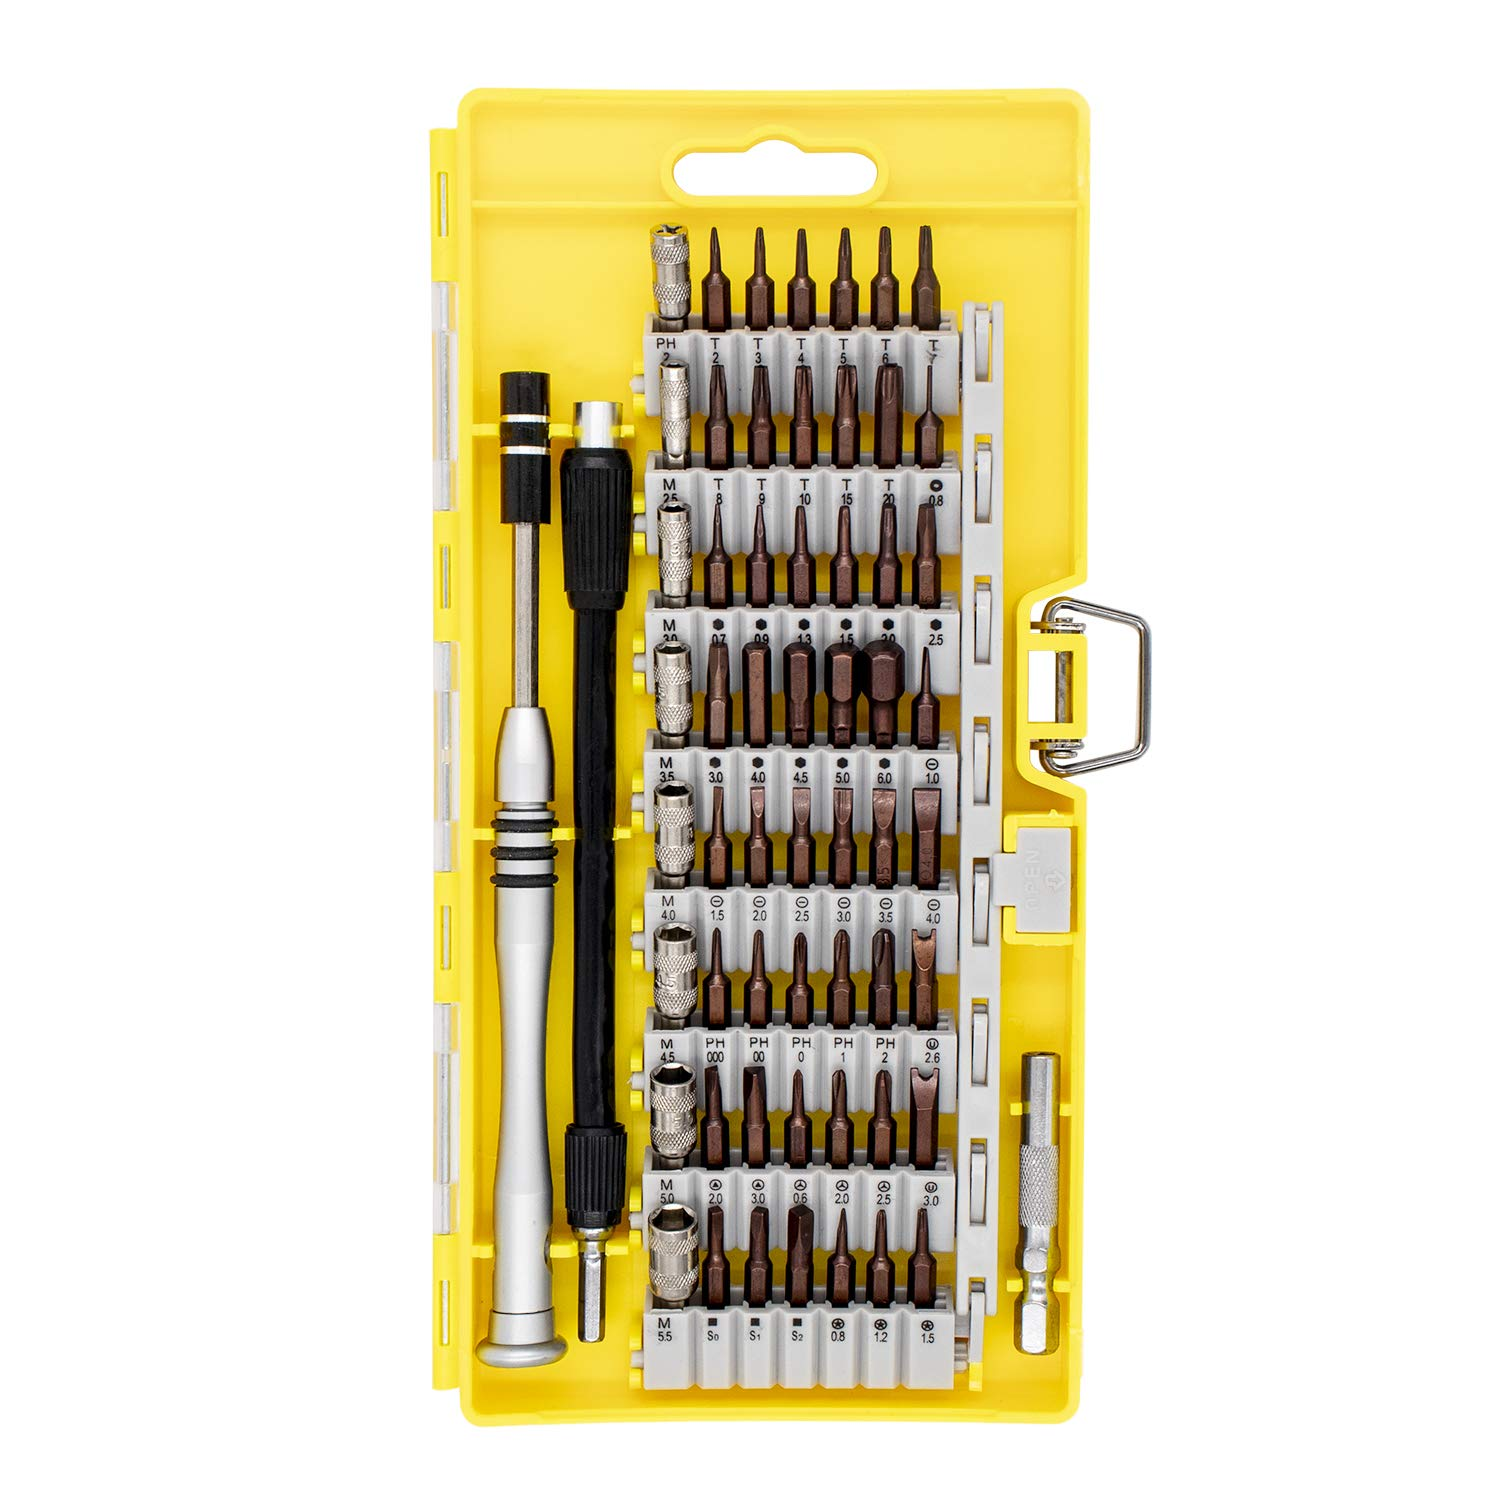 HX Studio 60 in 1 Screwdriver Set with 56 Bits Precision Screwdriver Kit,Magnetic Driver Kit, Professional Repair Tool Kit with Flexible Shaft for for iPhone,MacBook, Tablet,Cellphone, Xbox, PC, Game by HX Studio